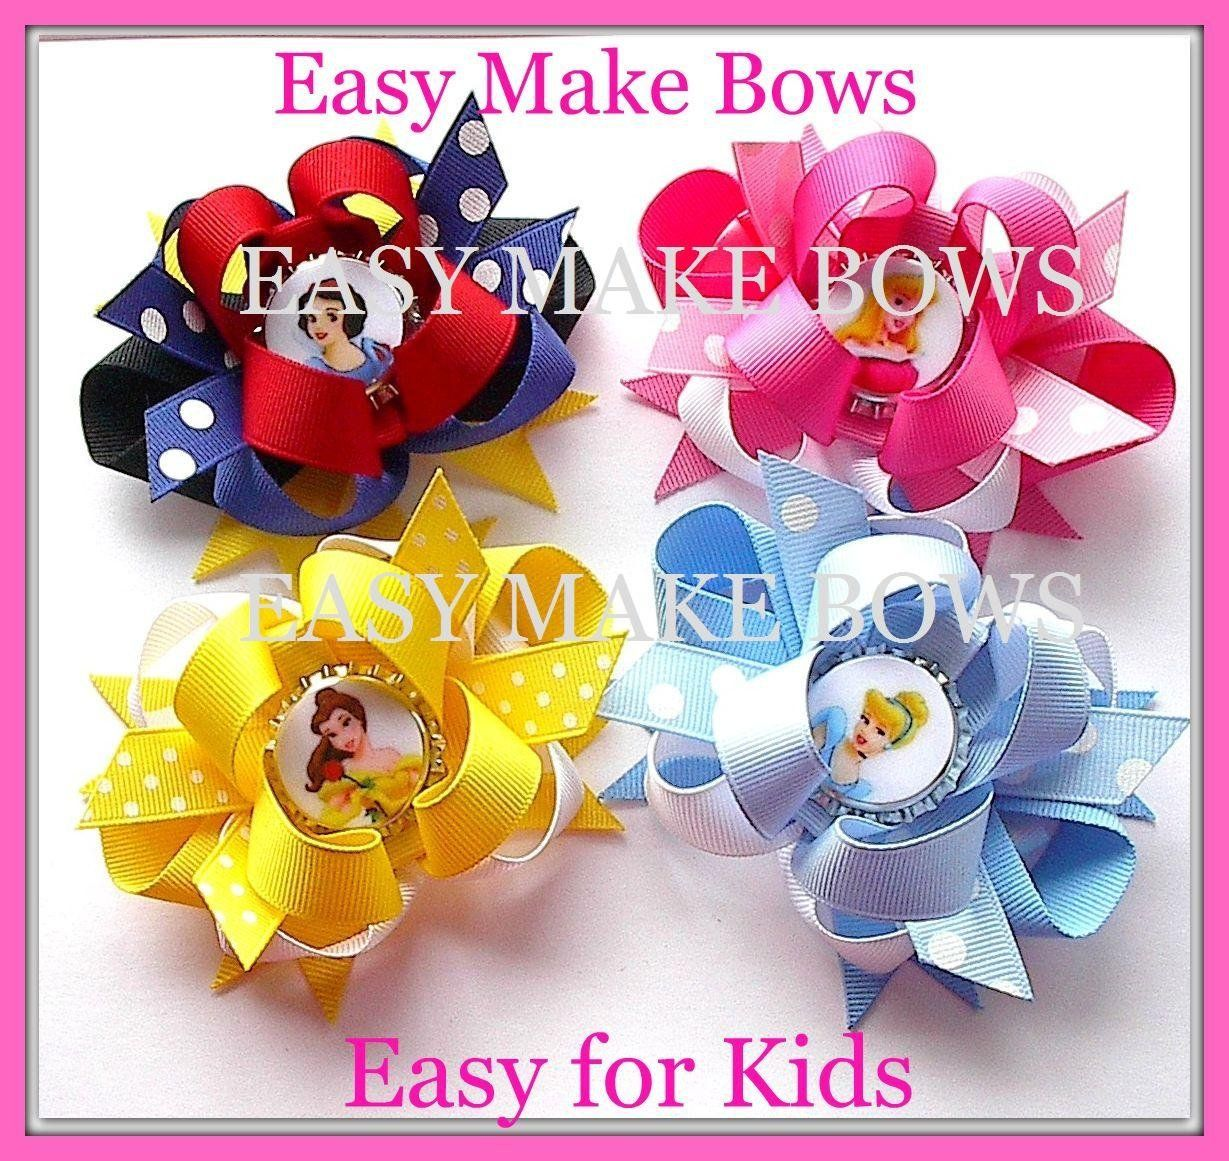 Amazon Com Kids Craft Party Princess Bottle Cap Bows How To Make Hair Bow Instruction Assembly Kit With Rib Making Hair Bows Princess Crafts Kids Party Crafts